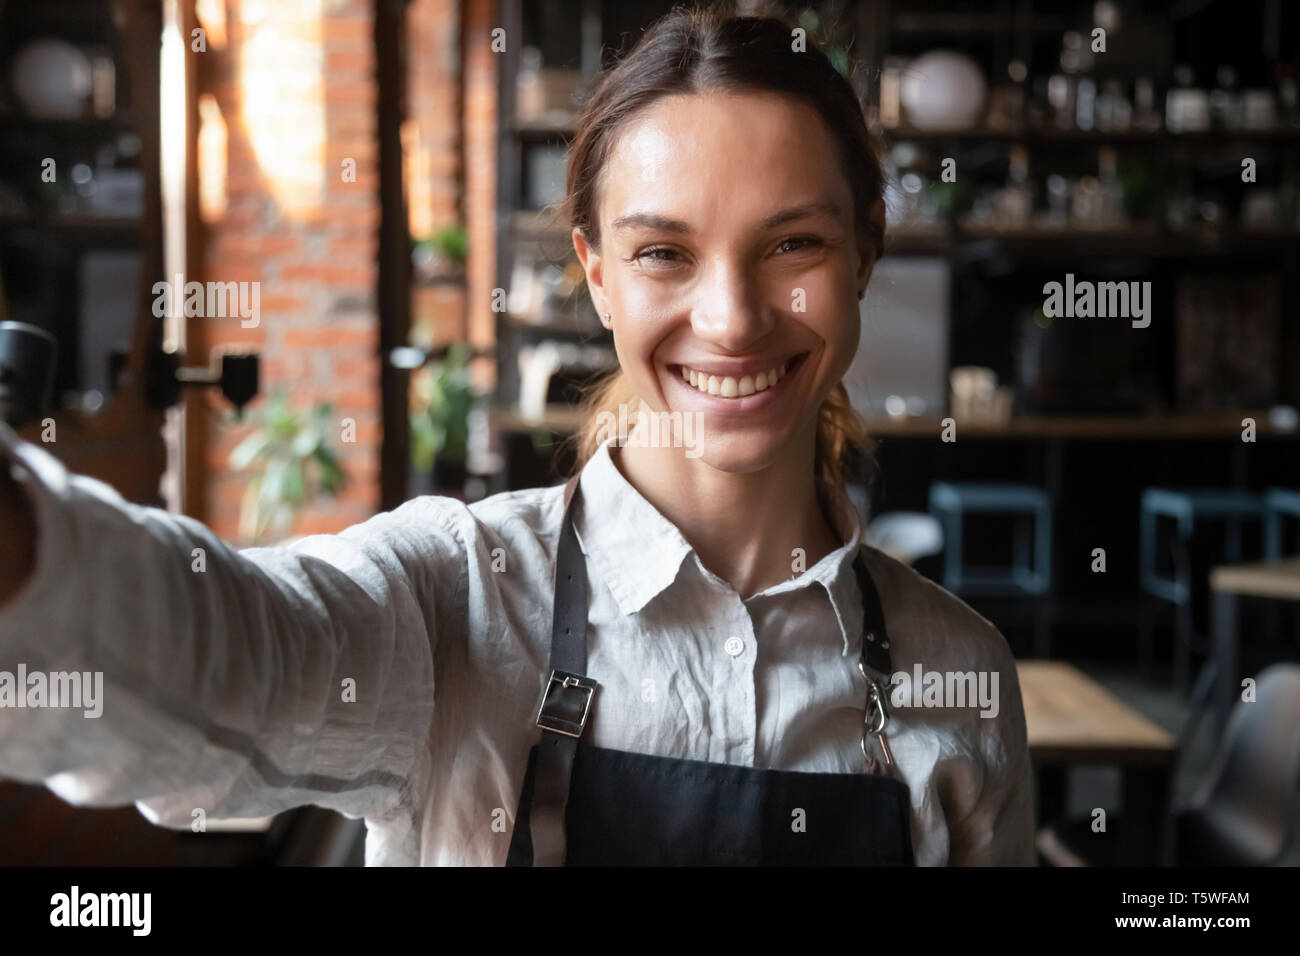 Mixed race female in apron smiling looking at web camera - Stock Image